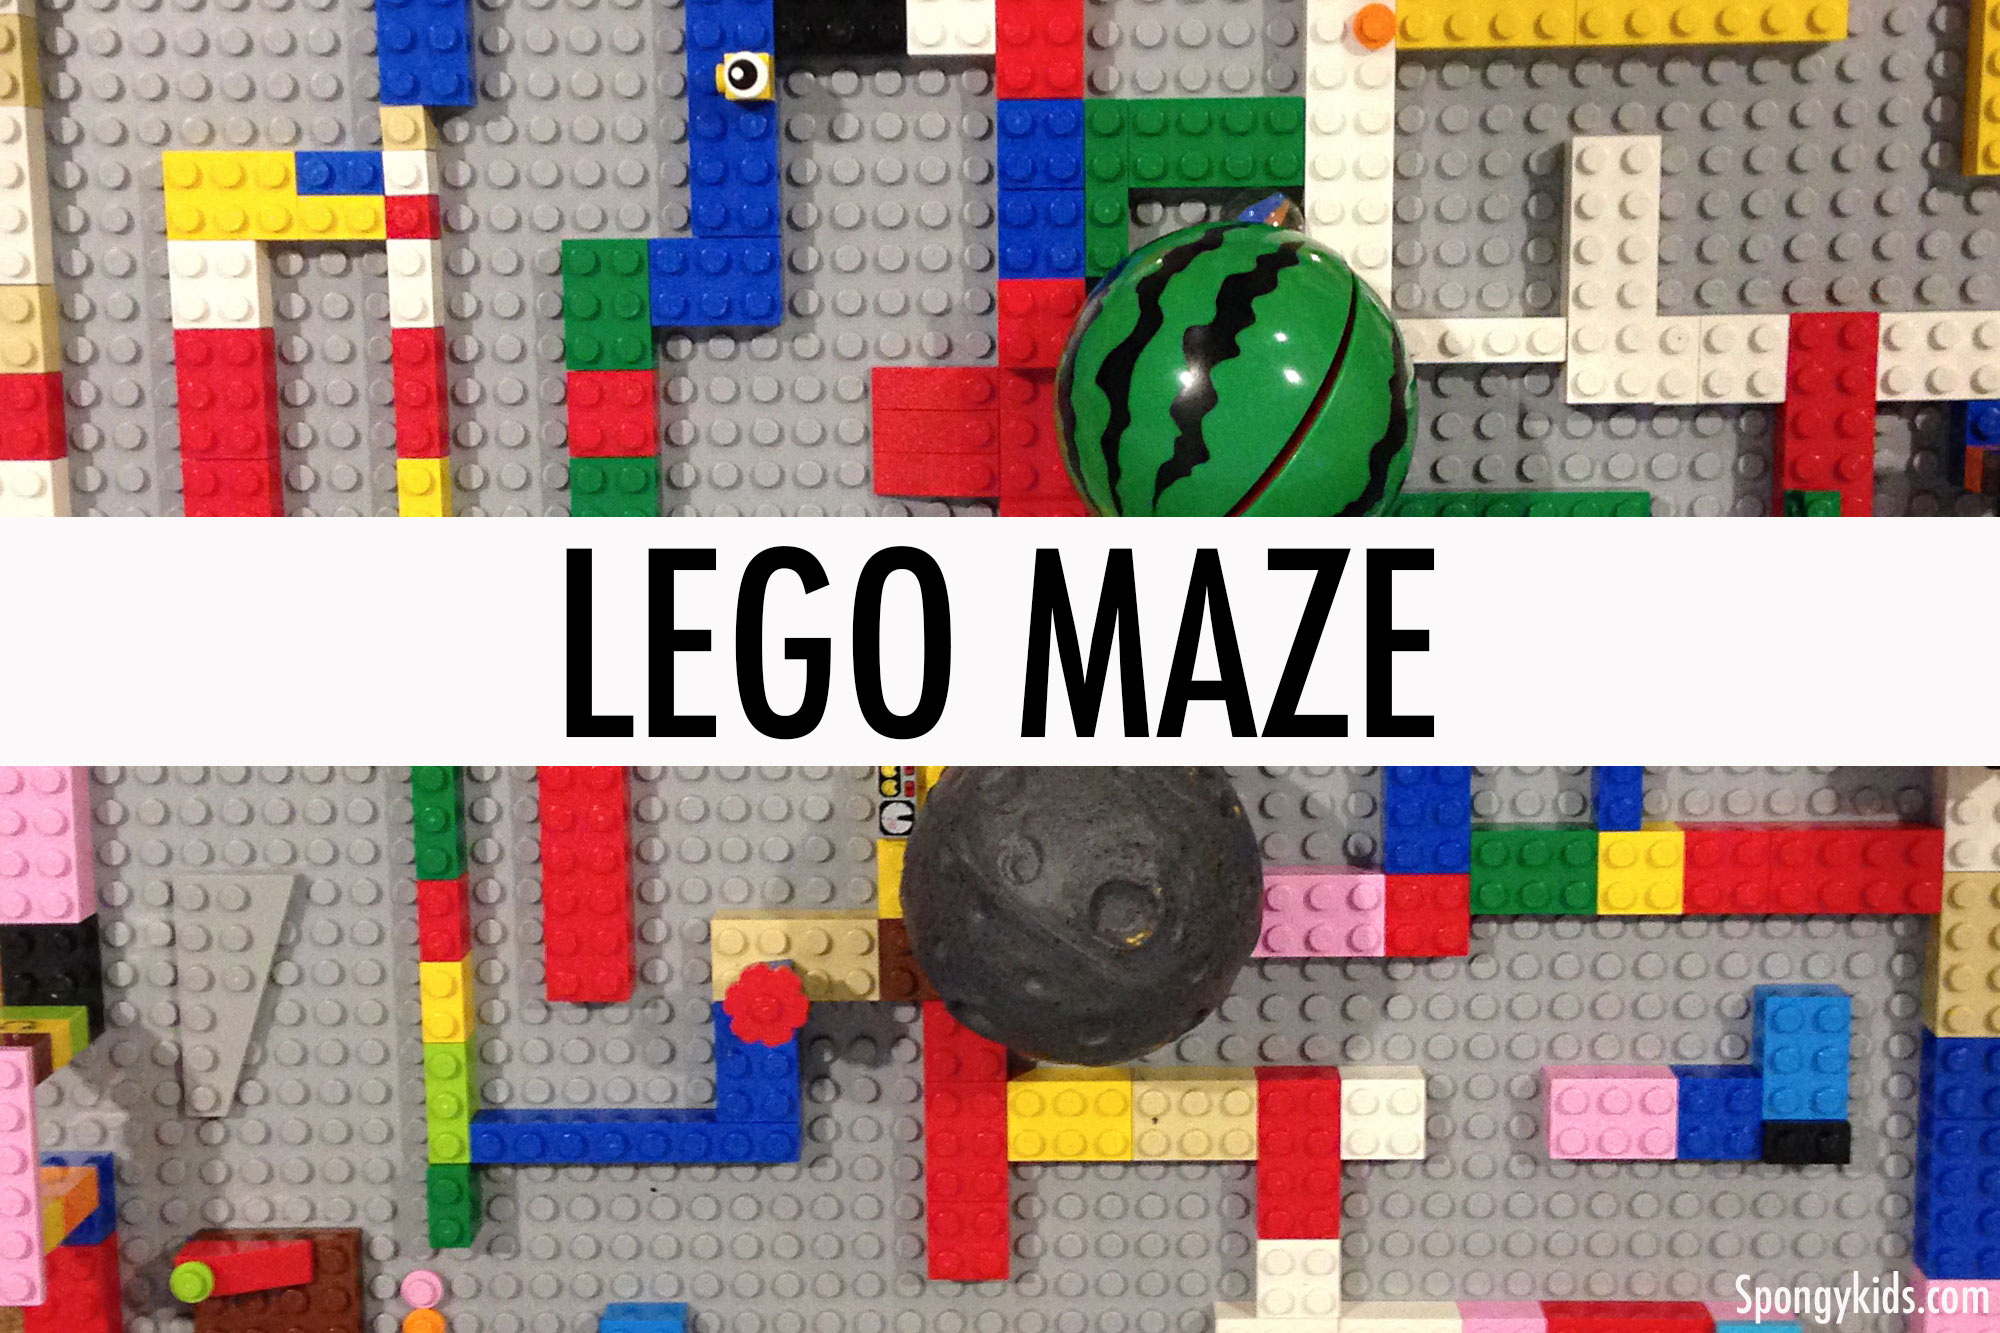 Lego maze - Learning Activities to Keep Kids Busy